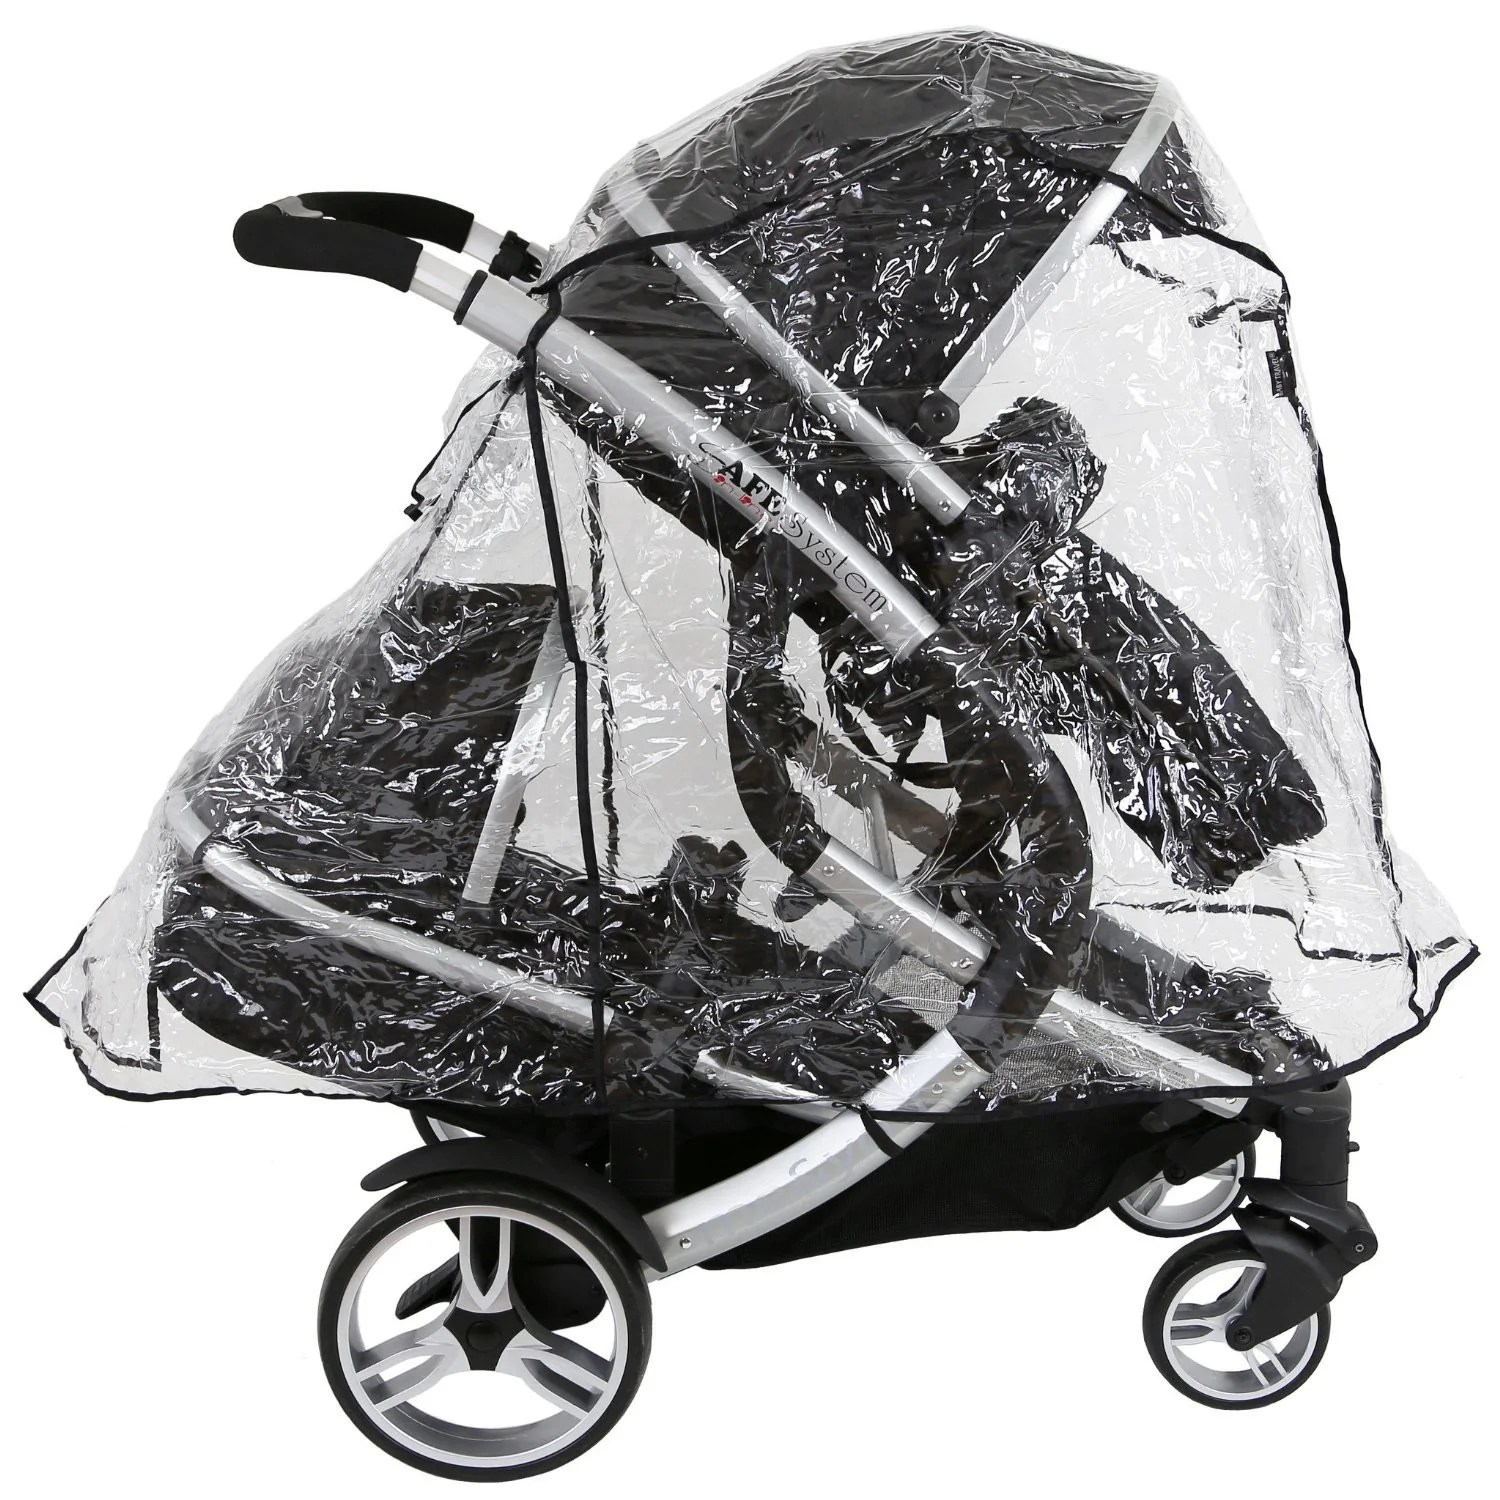 Joolz Buggy Board Uk Welcome To Baby Travel Ltd Exclusive British Designer And